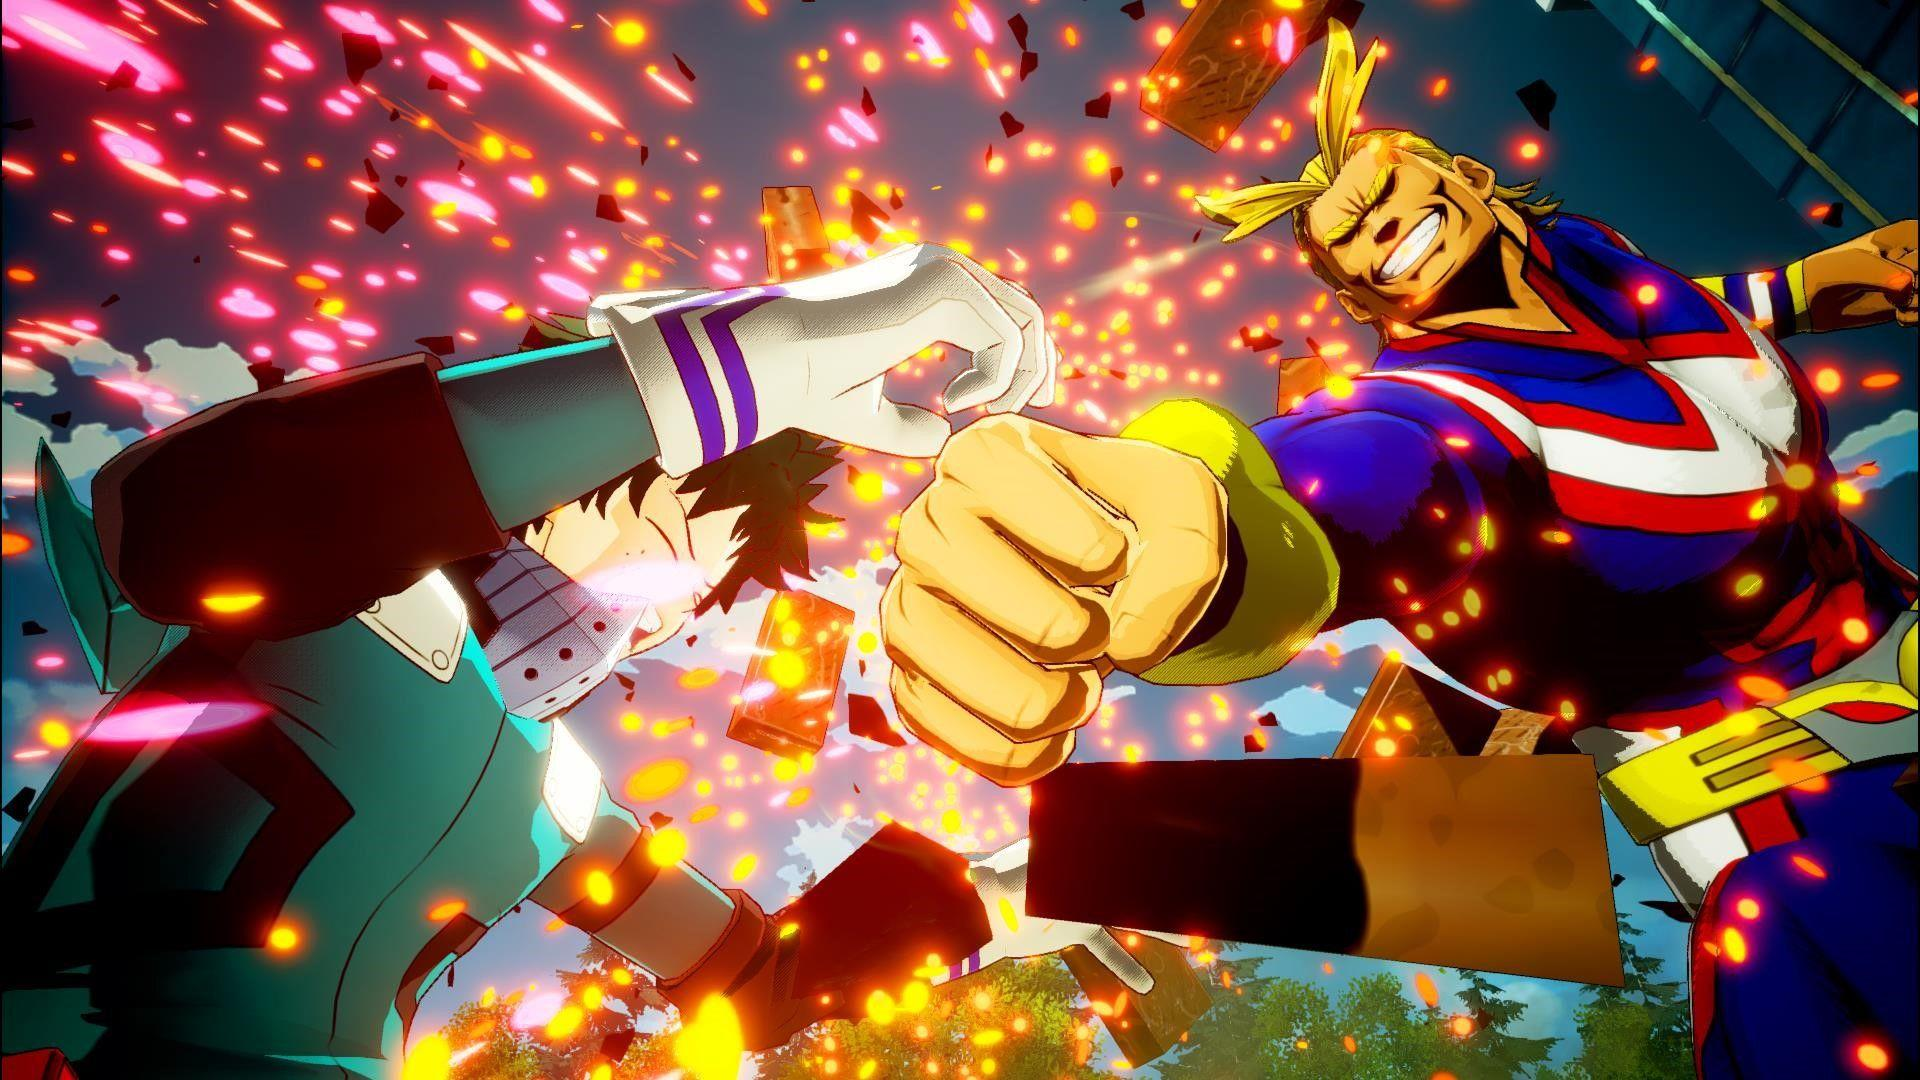 My Hero Academia: One's Justice screenshots show All Might, Katsuki